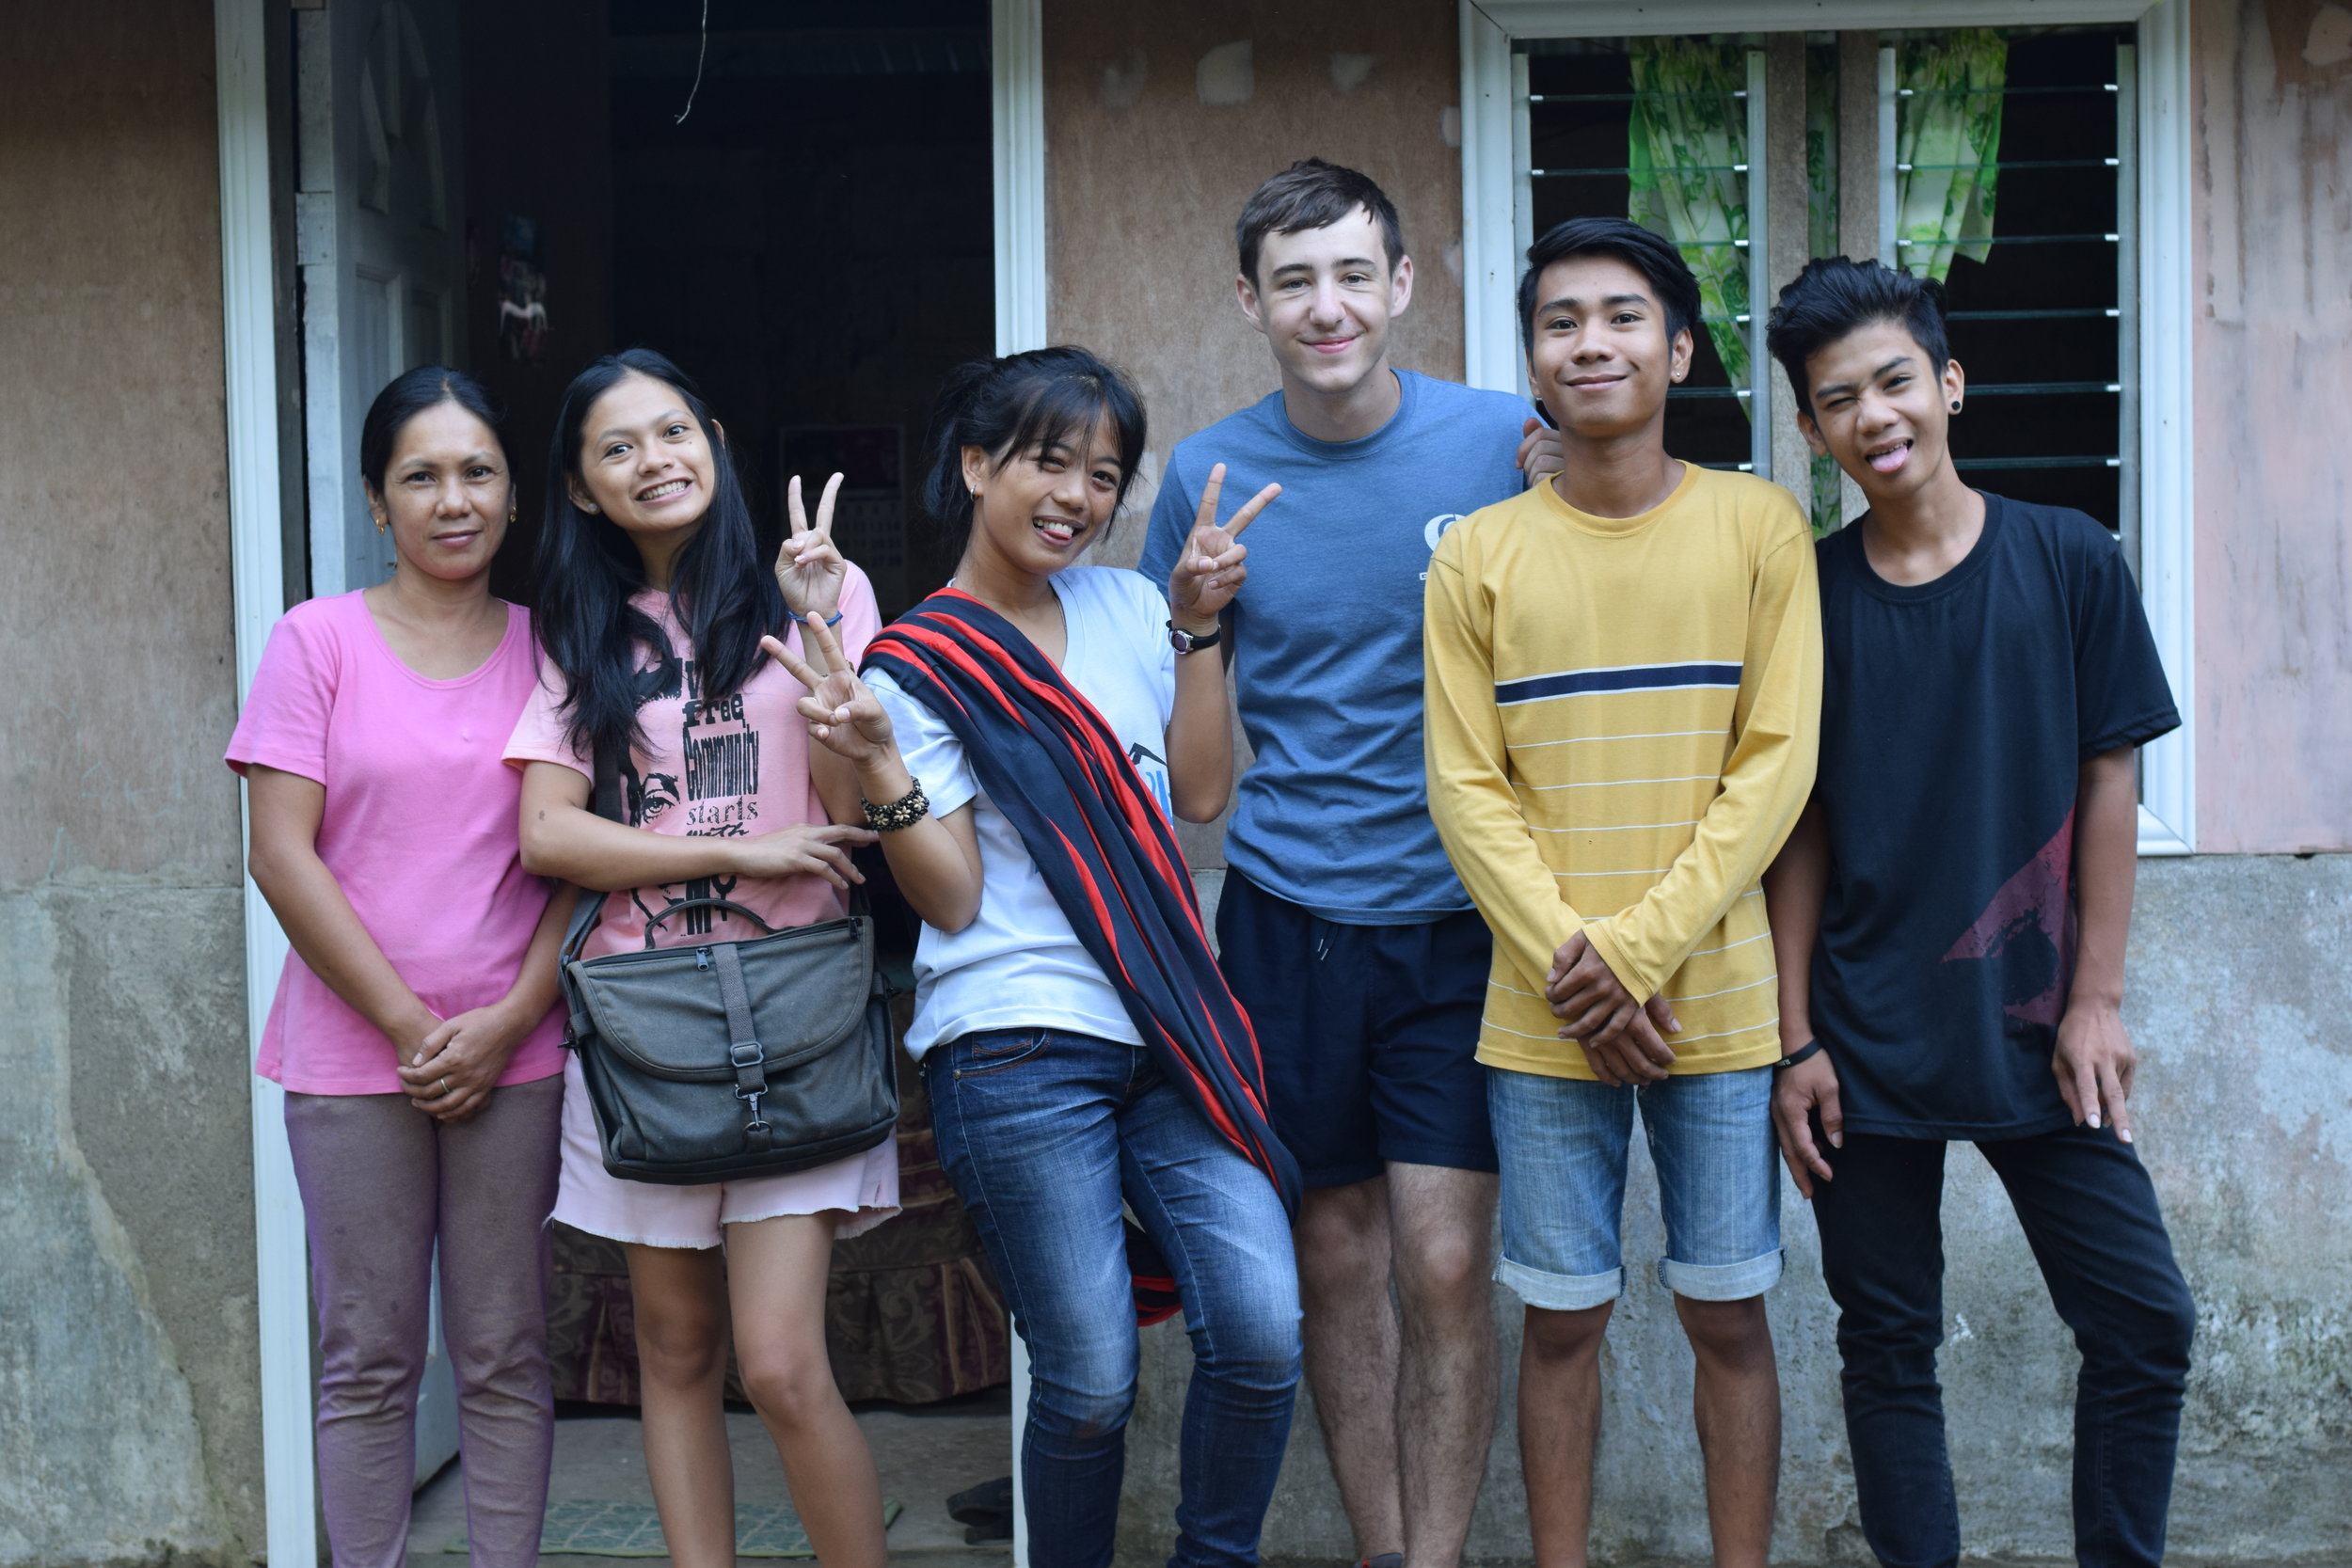 Immersion team participants and GOD SEA interns visit Jairus' home in the village of Kauswagan to visit with his family and learn the characteristics of rural life.